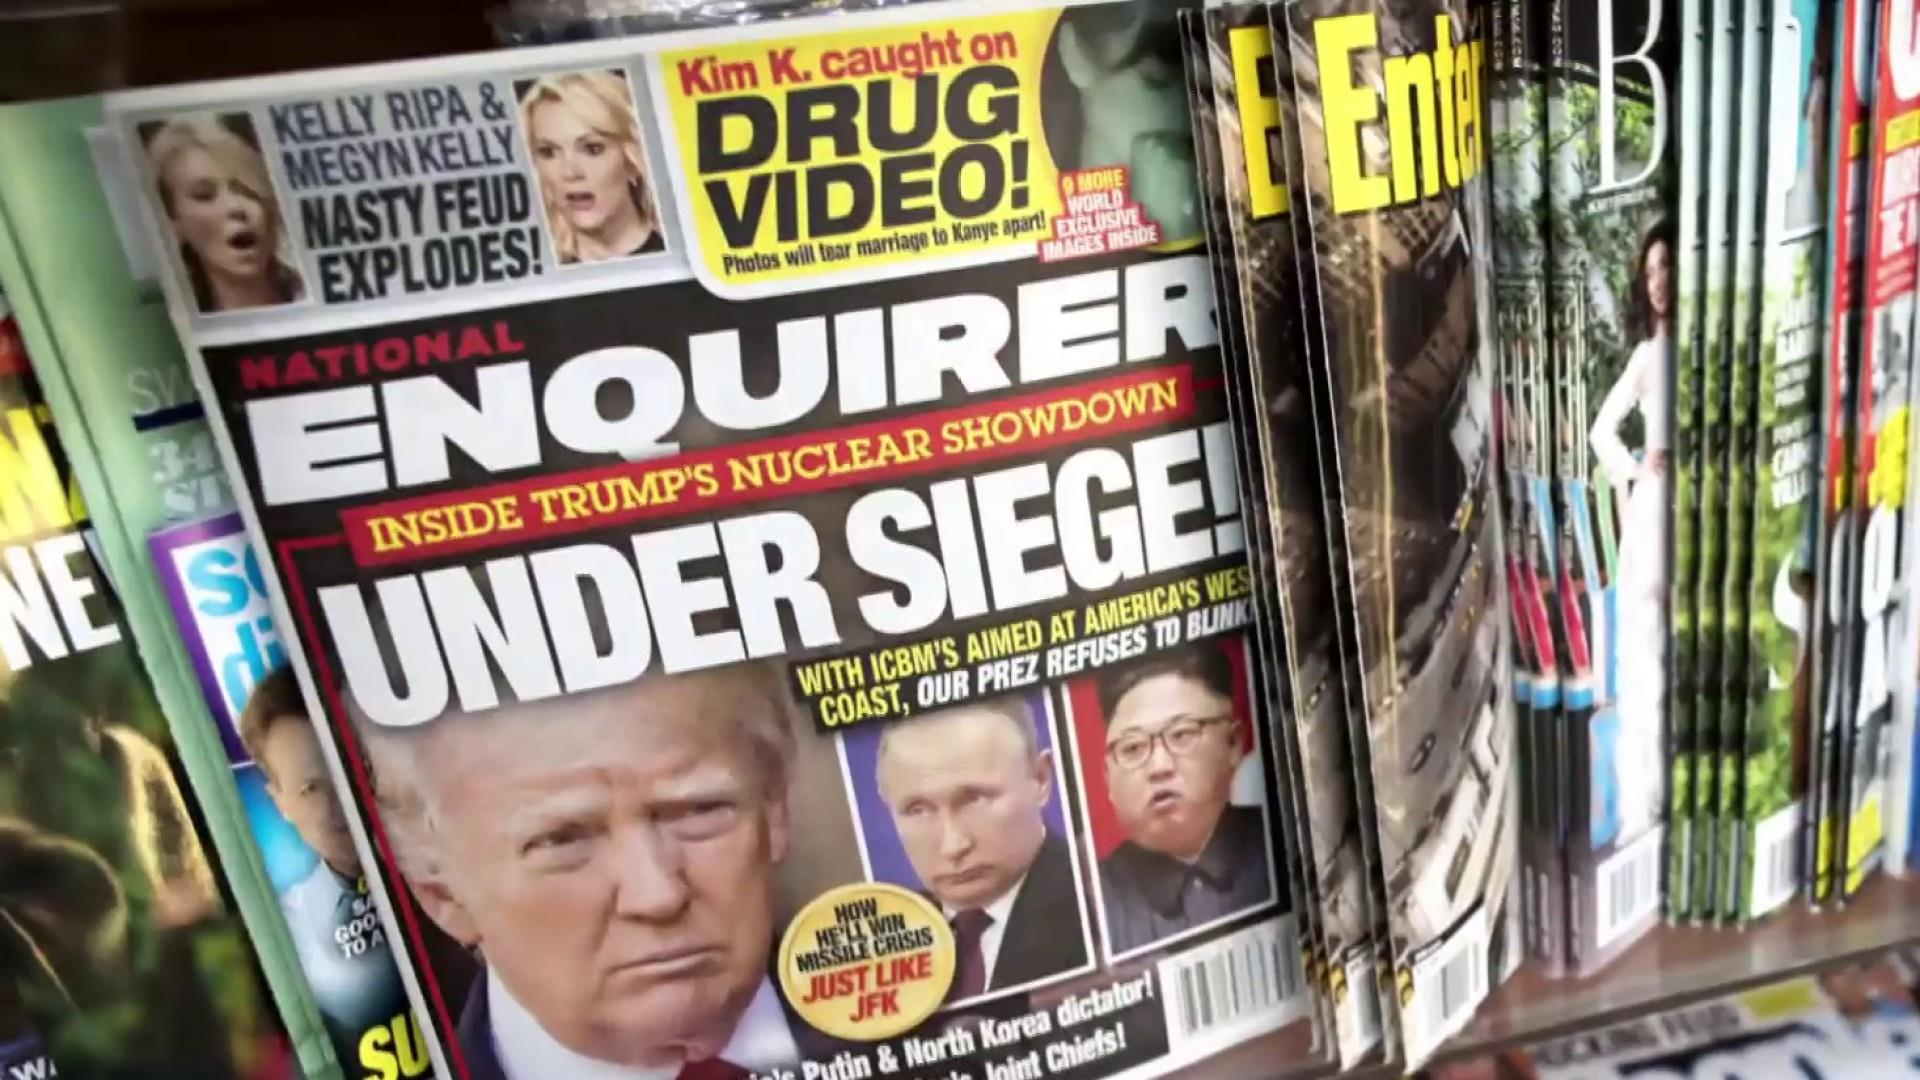 Federal prosecutors investigate National Enquirer after Bezos blackmail claims